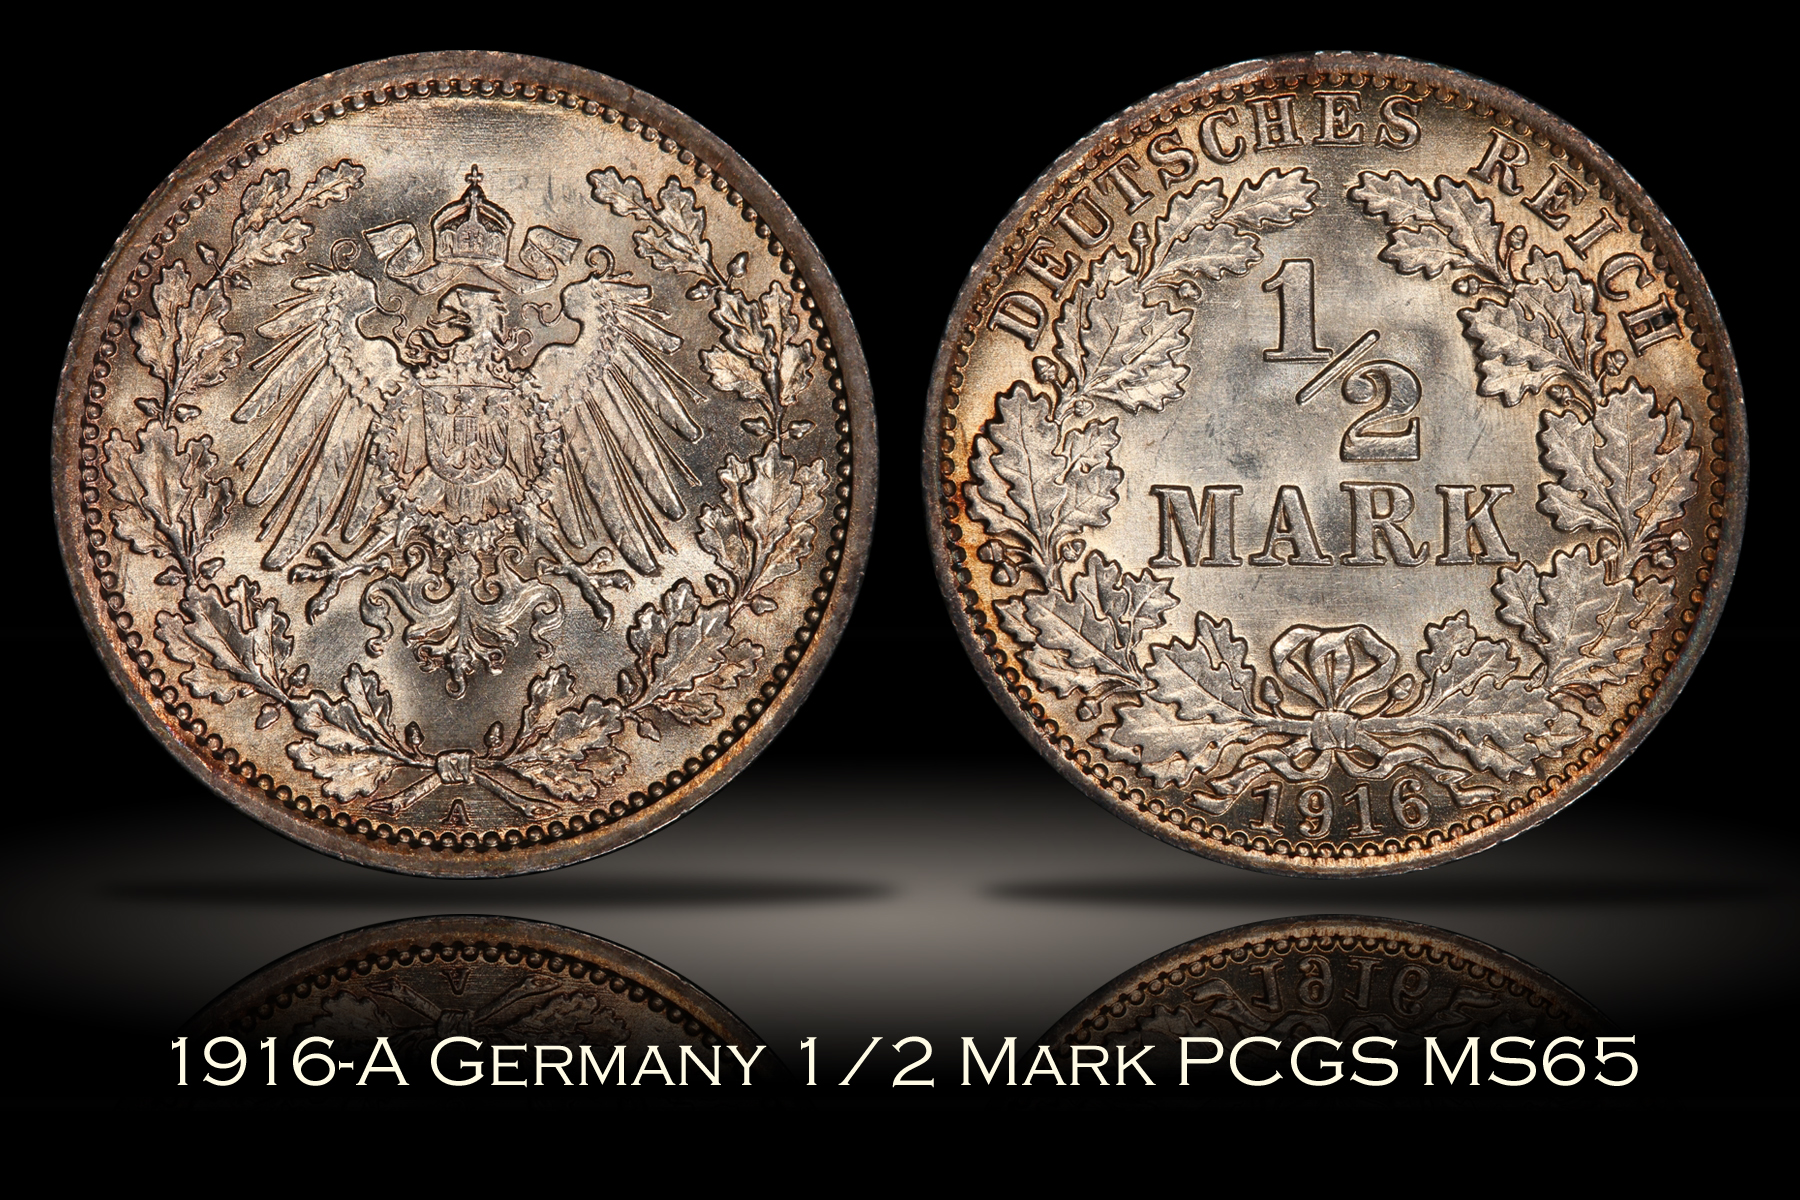 1916-A Germany 1/2 Mark PCGS MS65